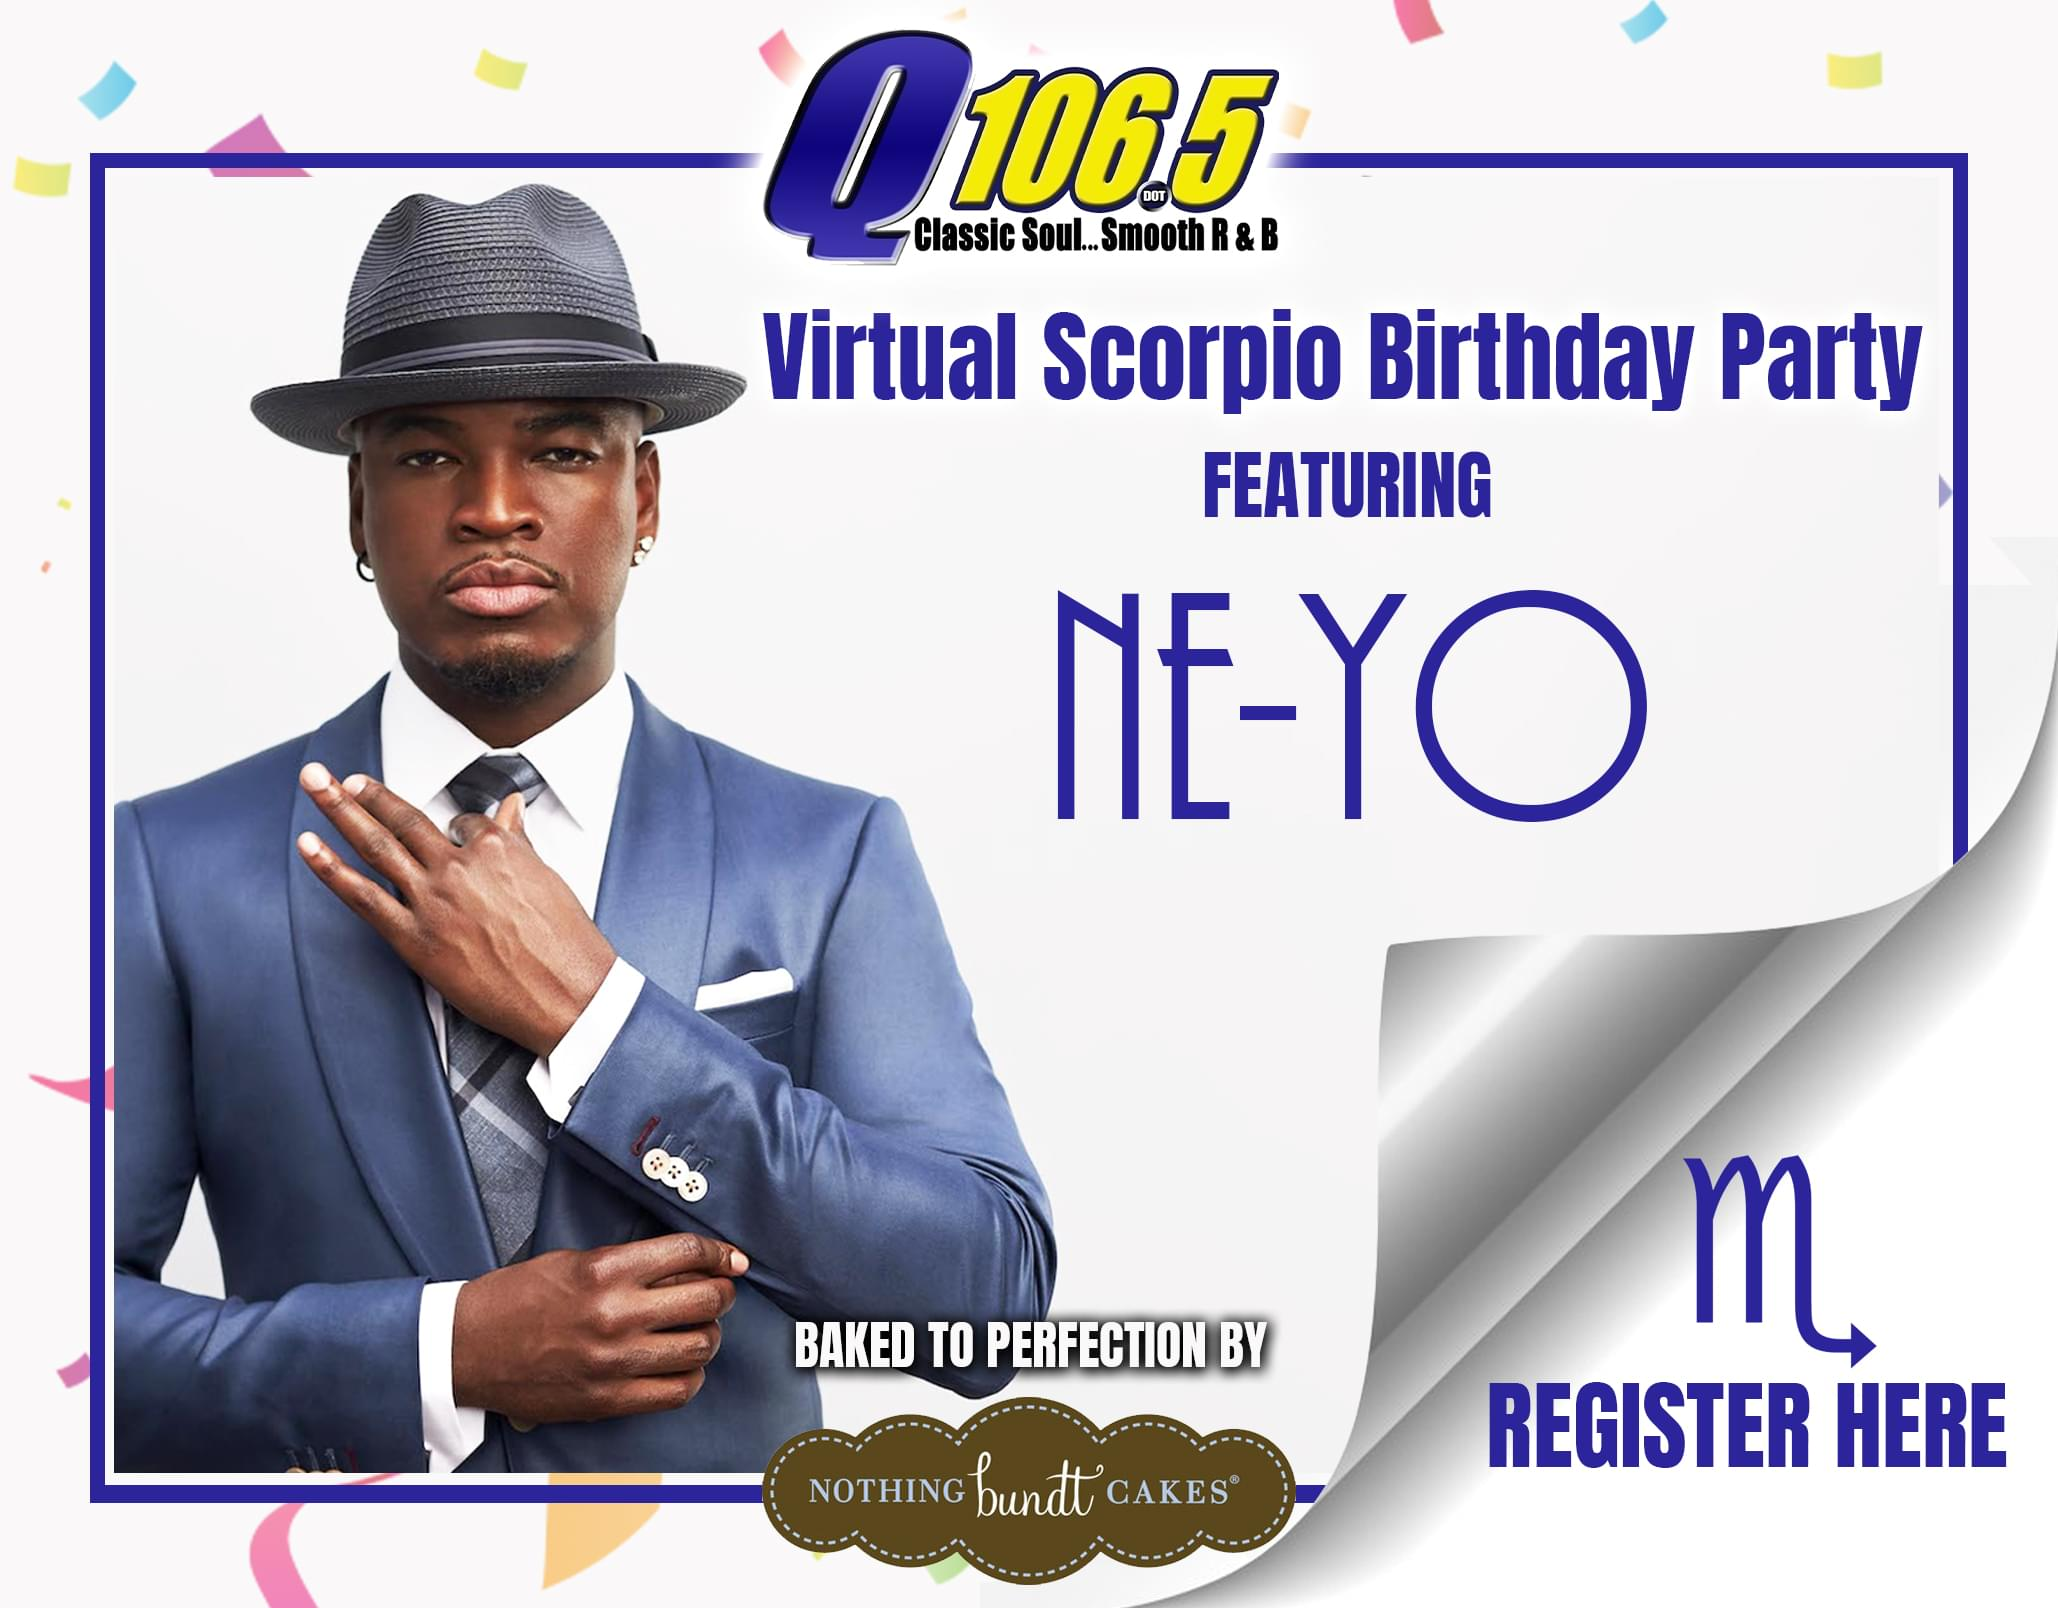 Virtual Scorpio Birthday Party